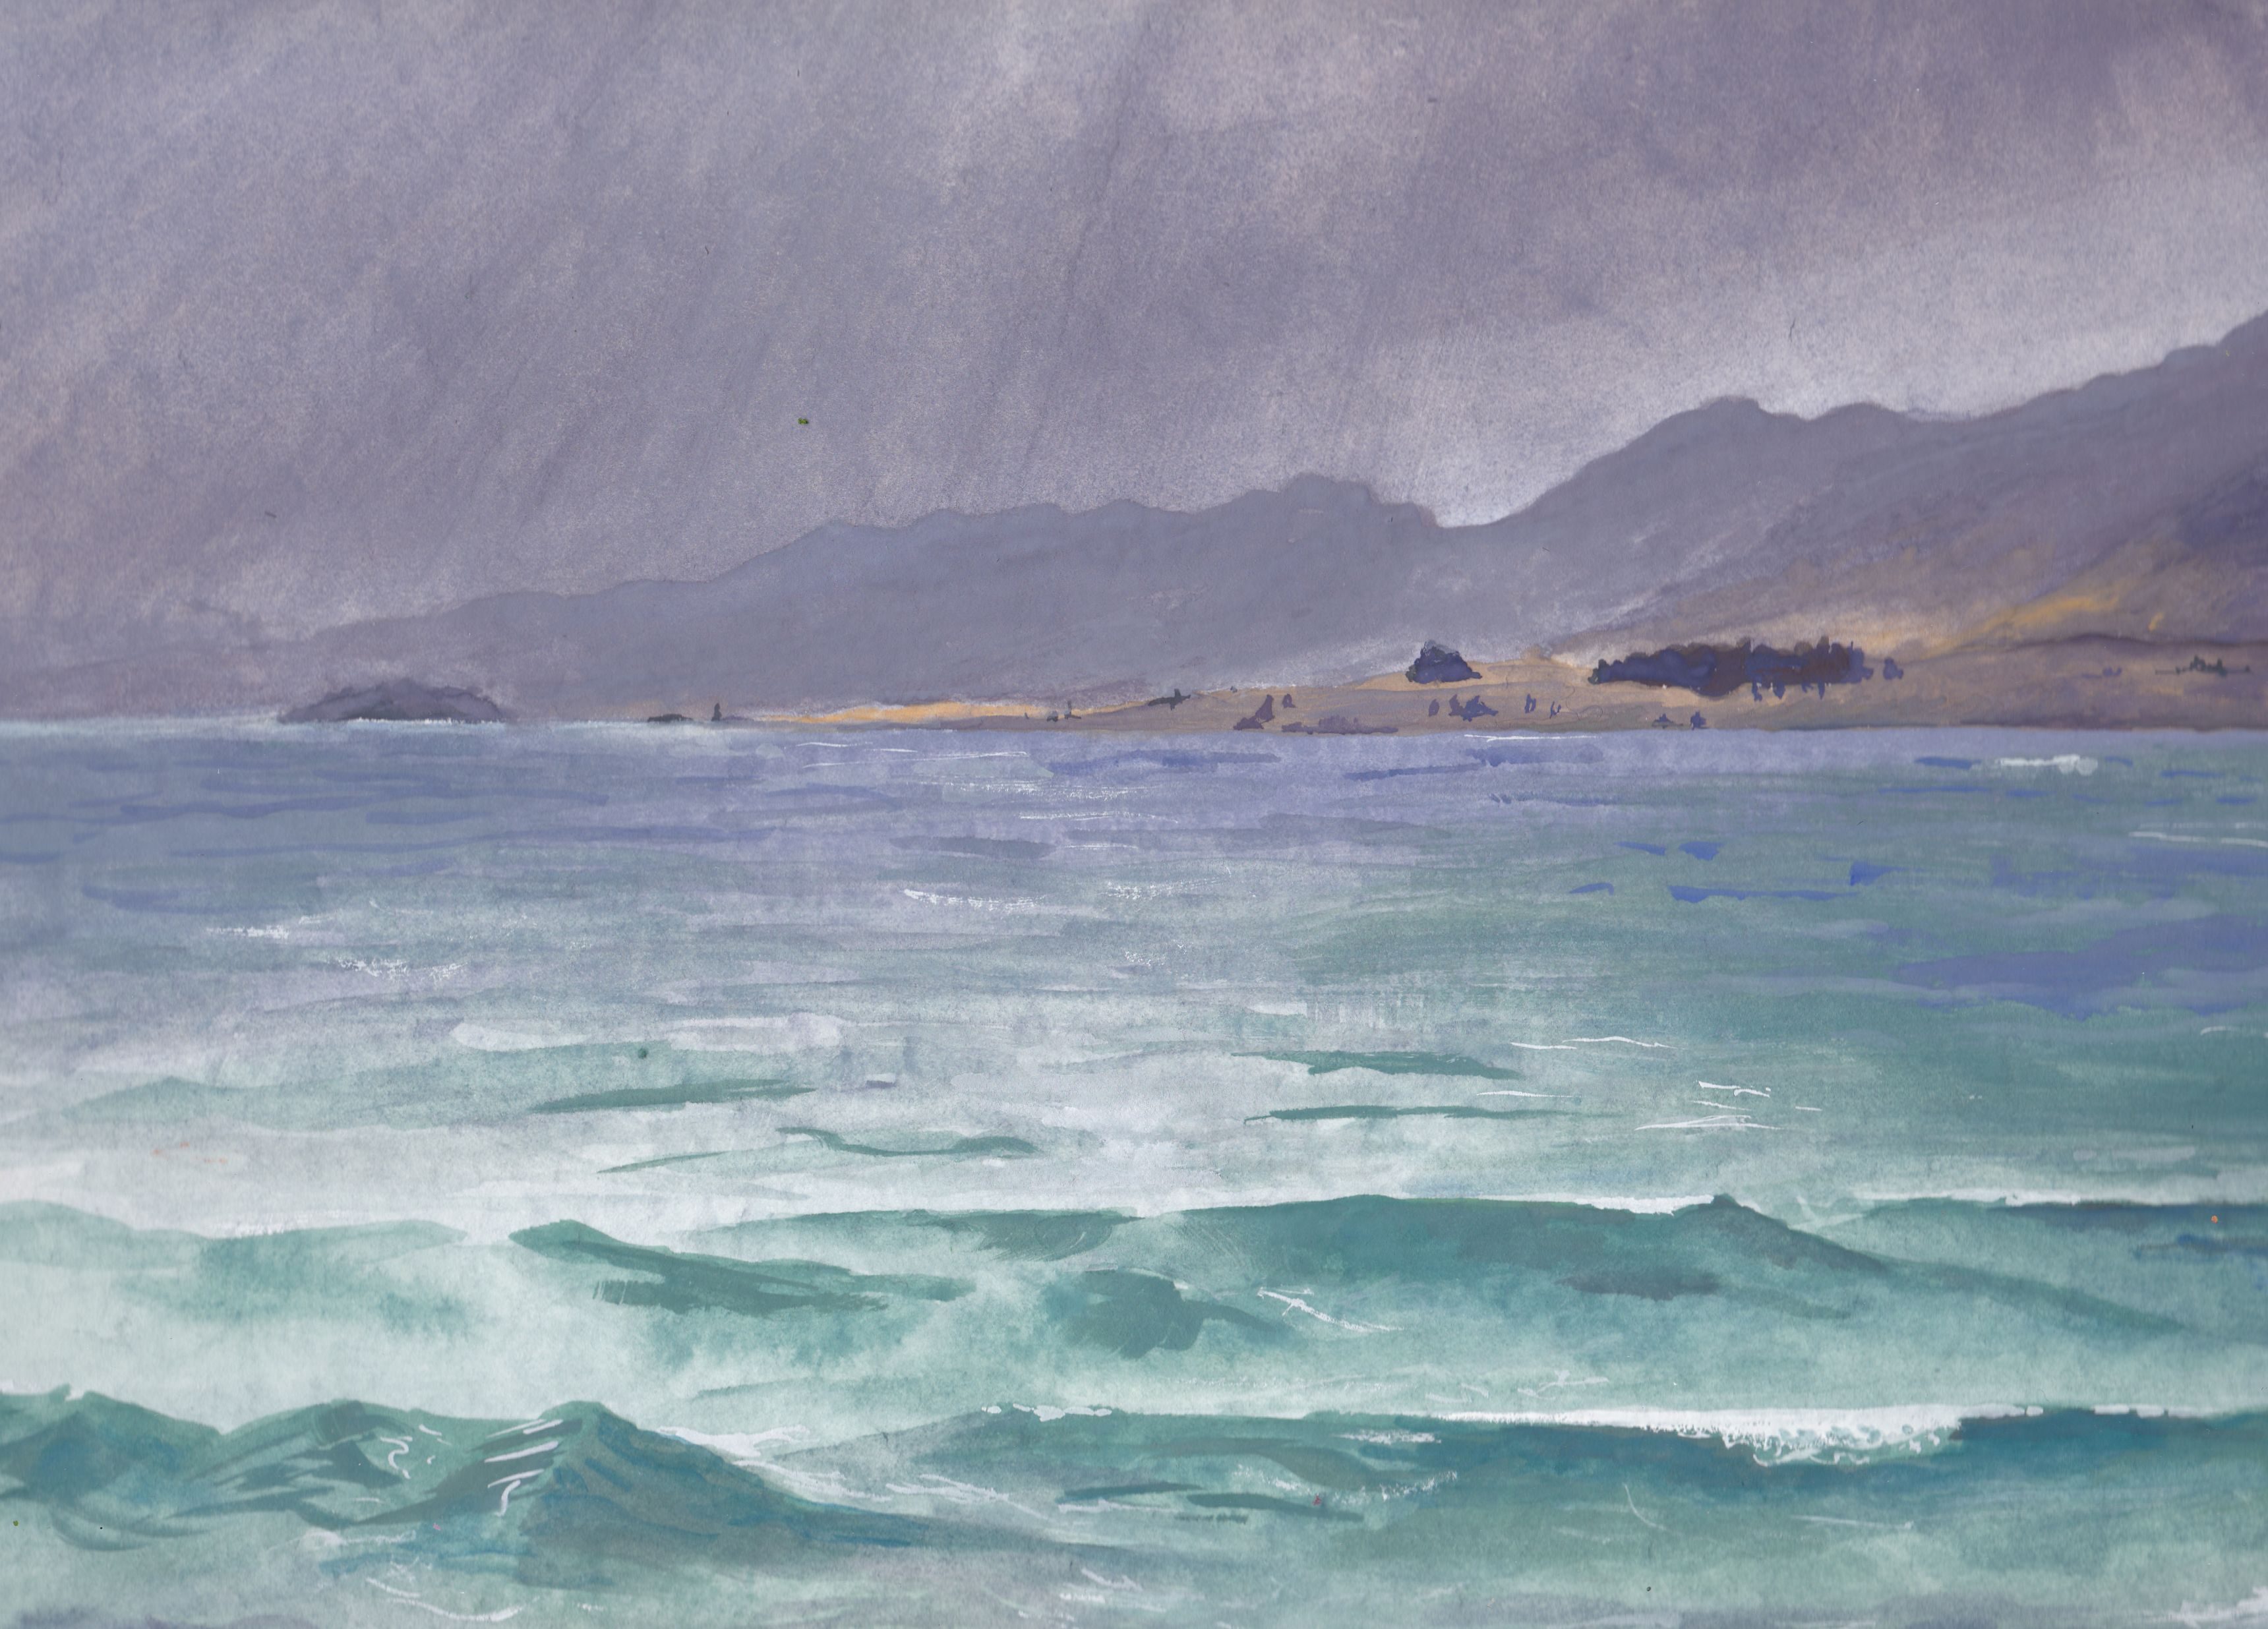 Stormy Lake Tekapo. Gouache auf 300g/m² Aquarellpapier, 32 x 24 cm. Gouache on 300gsm watercolur paper, 12.6